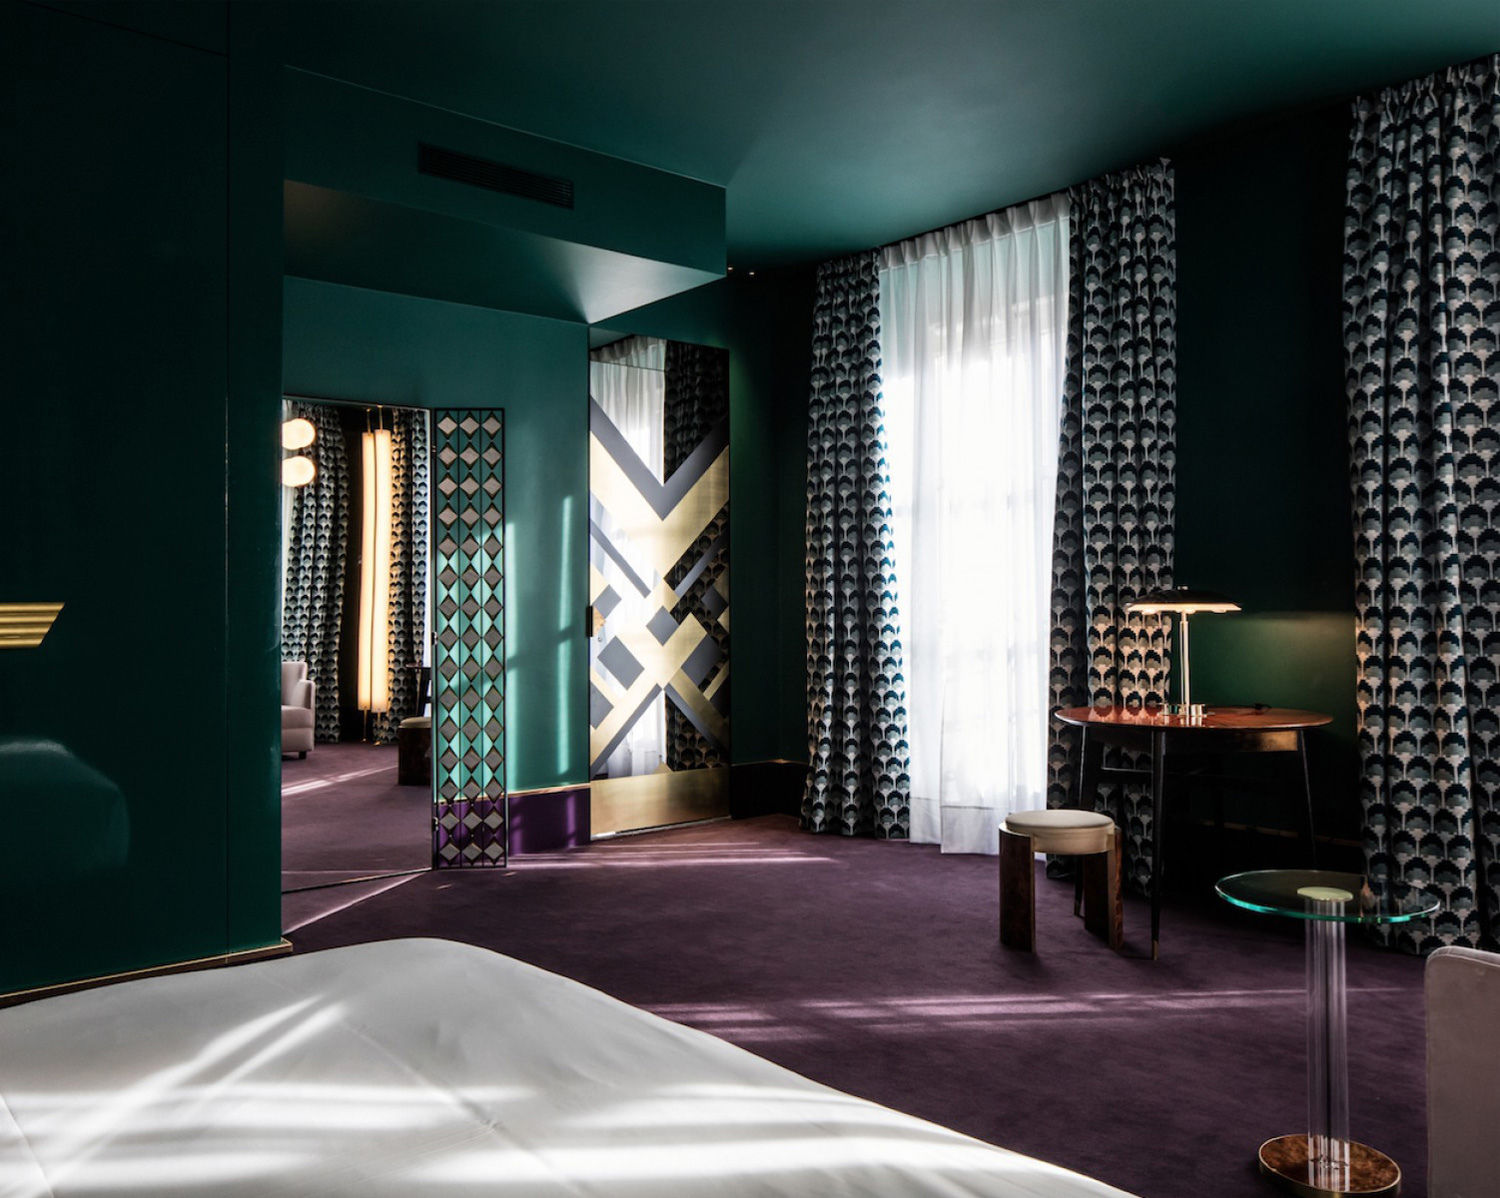 hotel saint marc paris by dimore studio yellowtrace. Black Bedroom Furniture Sets. Home Design Ideas